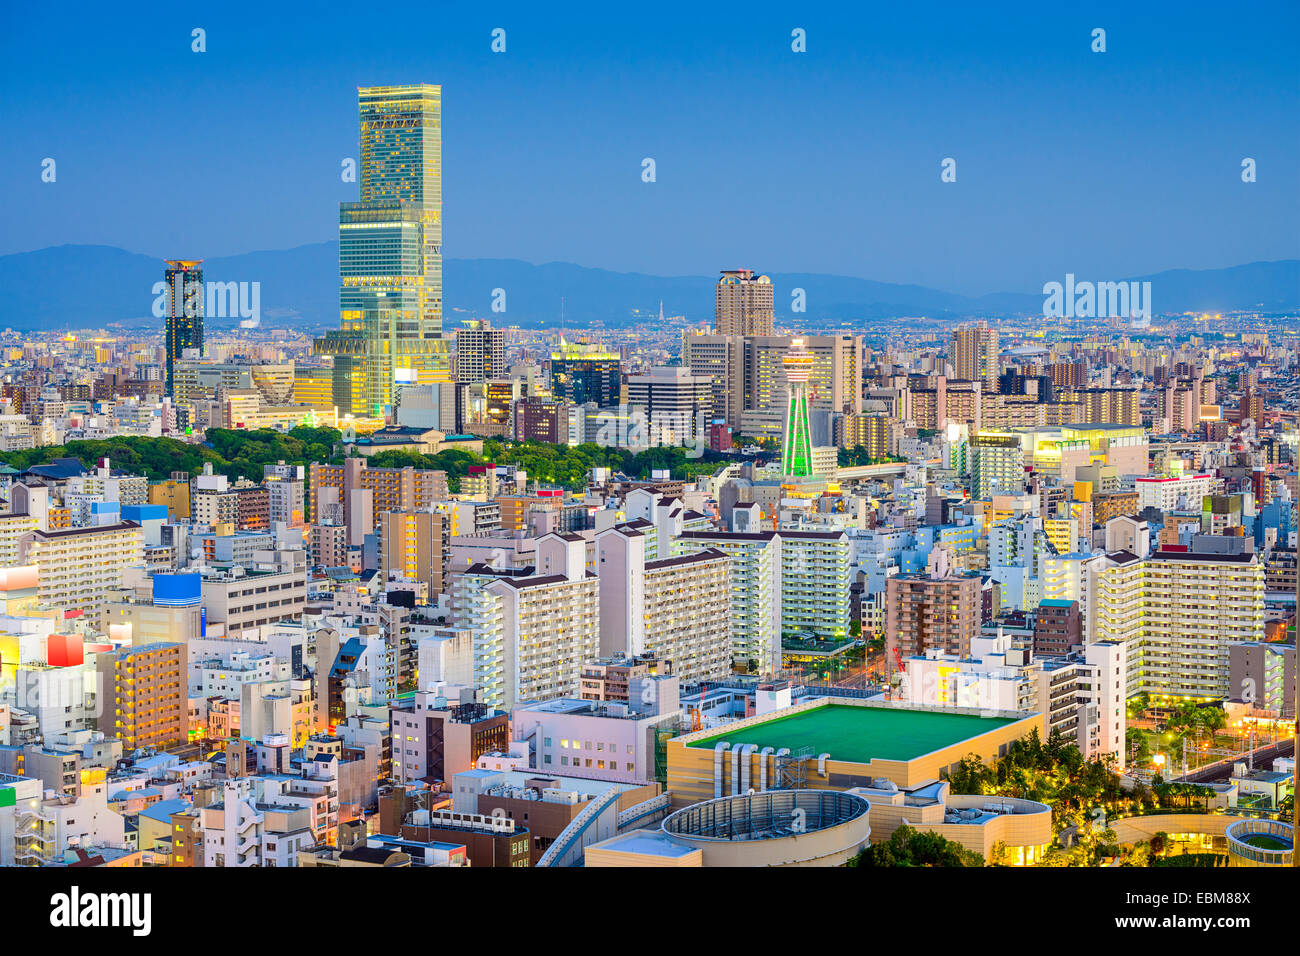 Osaka, Japan cityscape view of Abeno and Shinsekai districts. - Stock Image